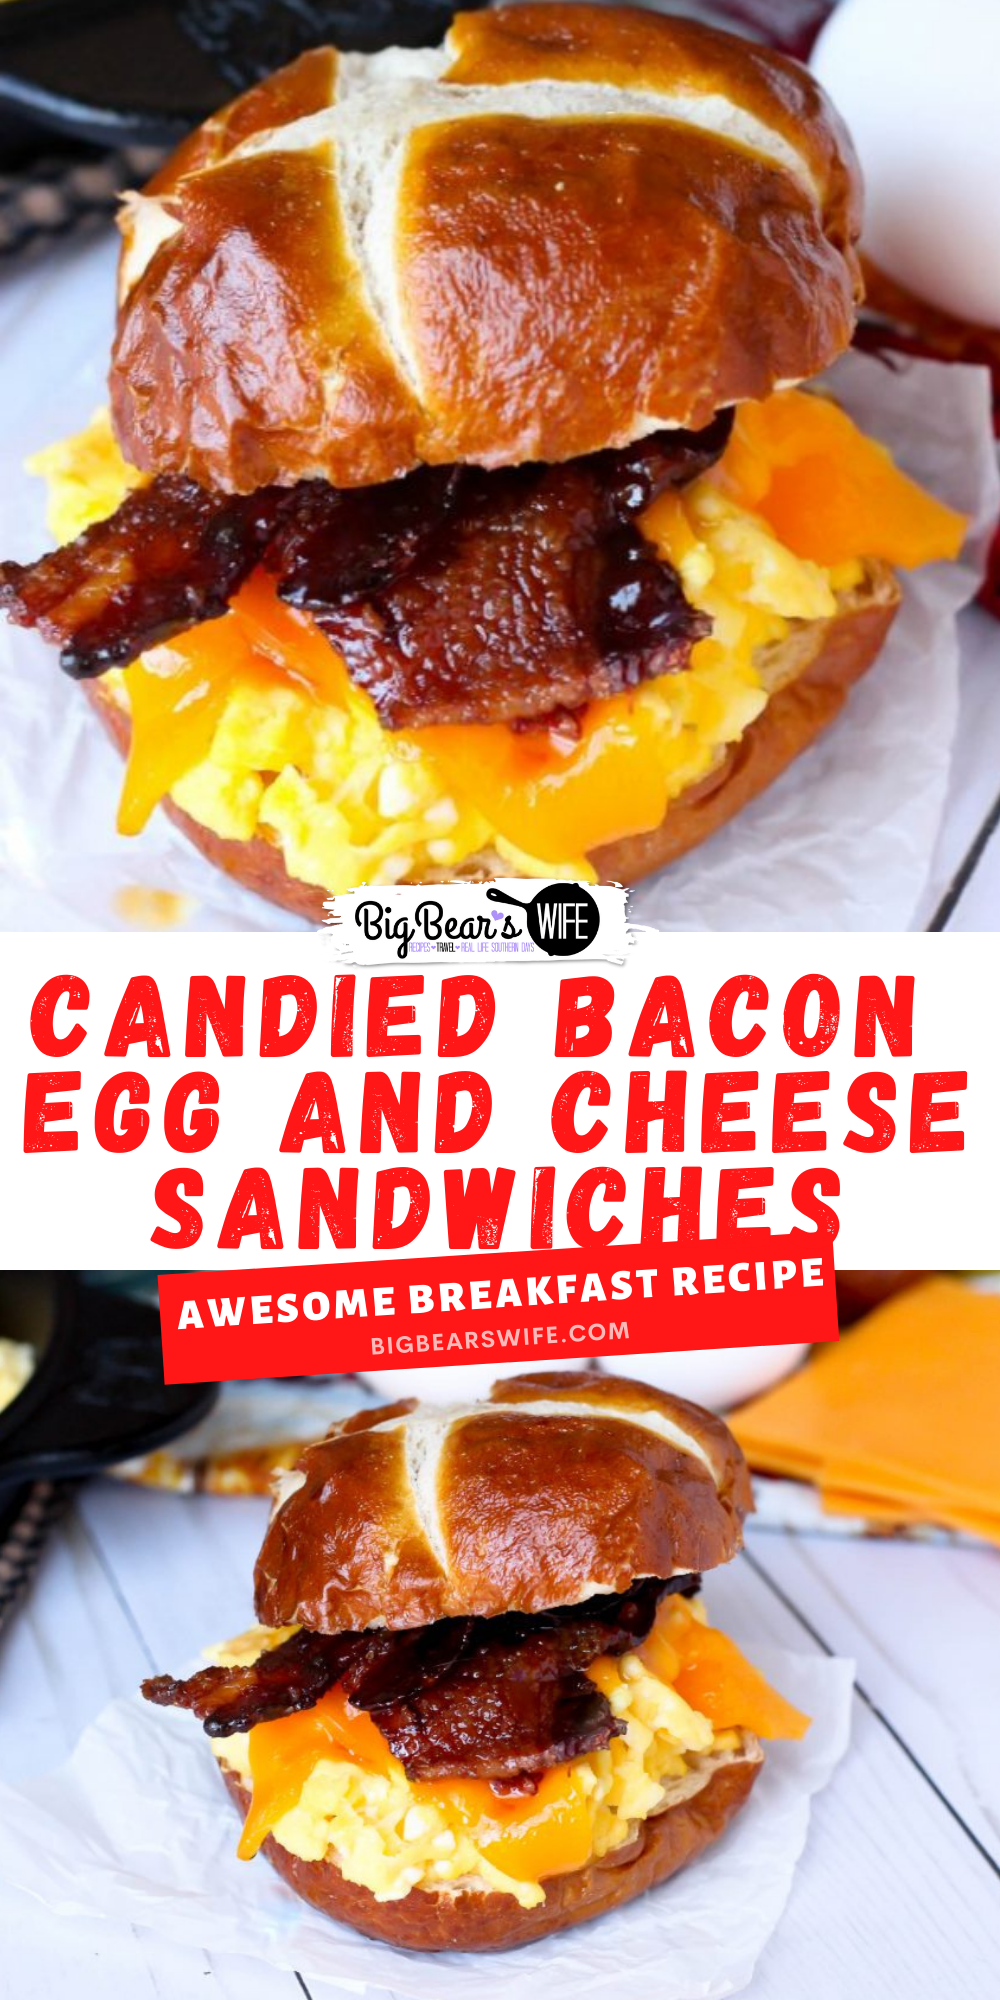 What's better than bacon for breakfast? Candied Bacon piled with perfectly scrambled eggs and cheddar cheese on a pretzel bun! Candied Bacon Egg and Cheese Sandwiches are the perfect way to start the day!  via @bigbearswife